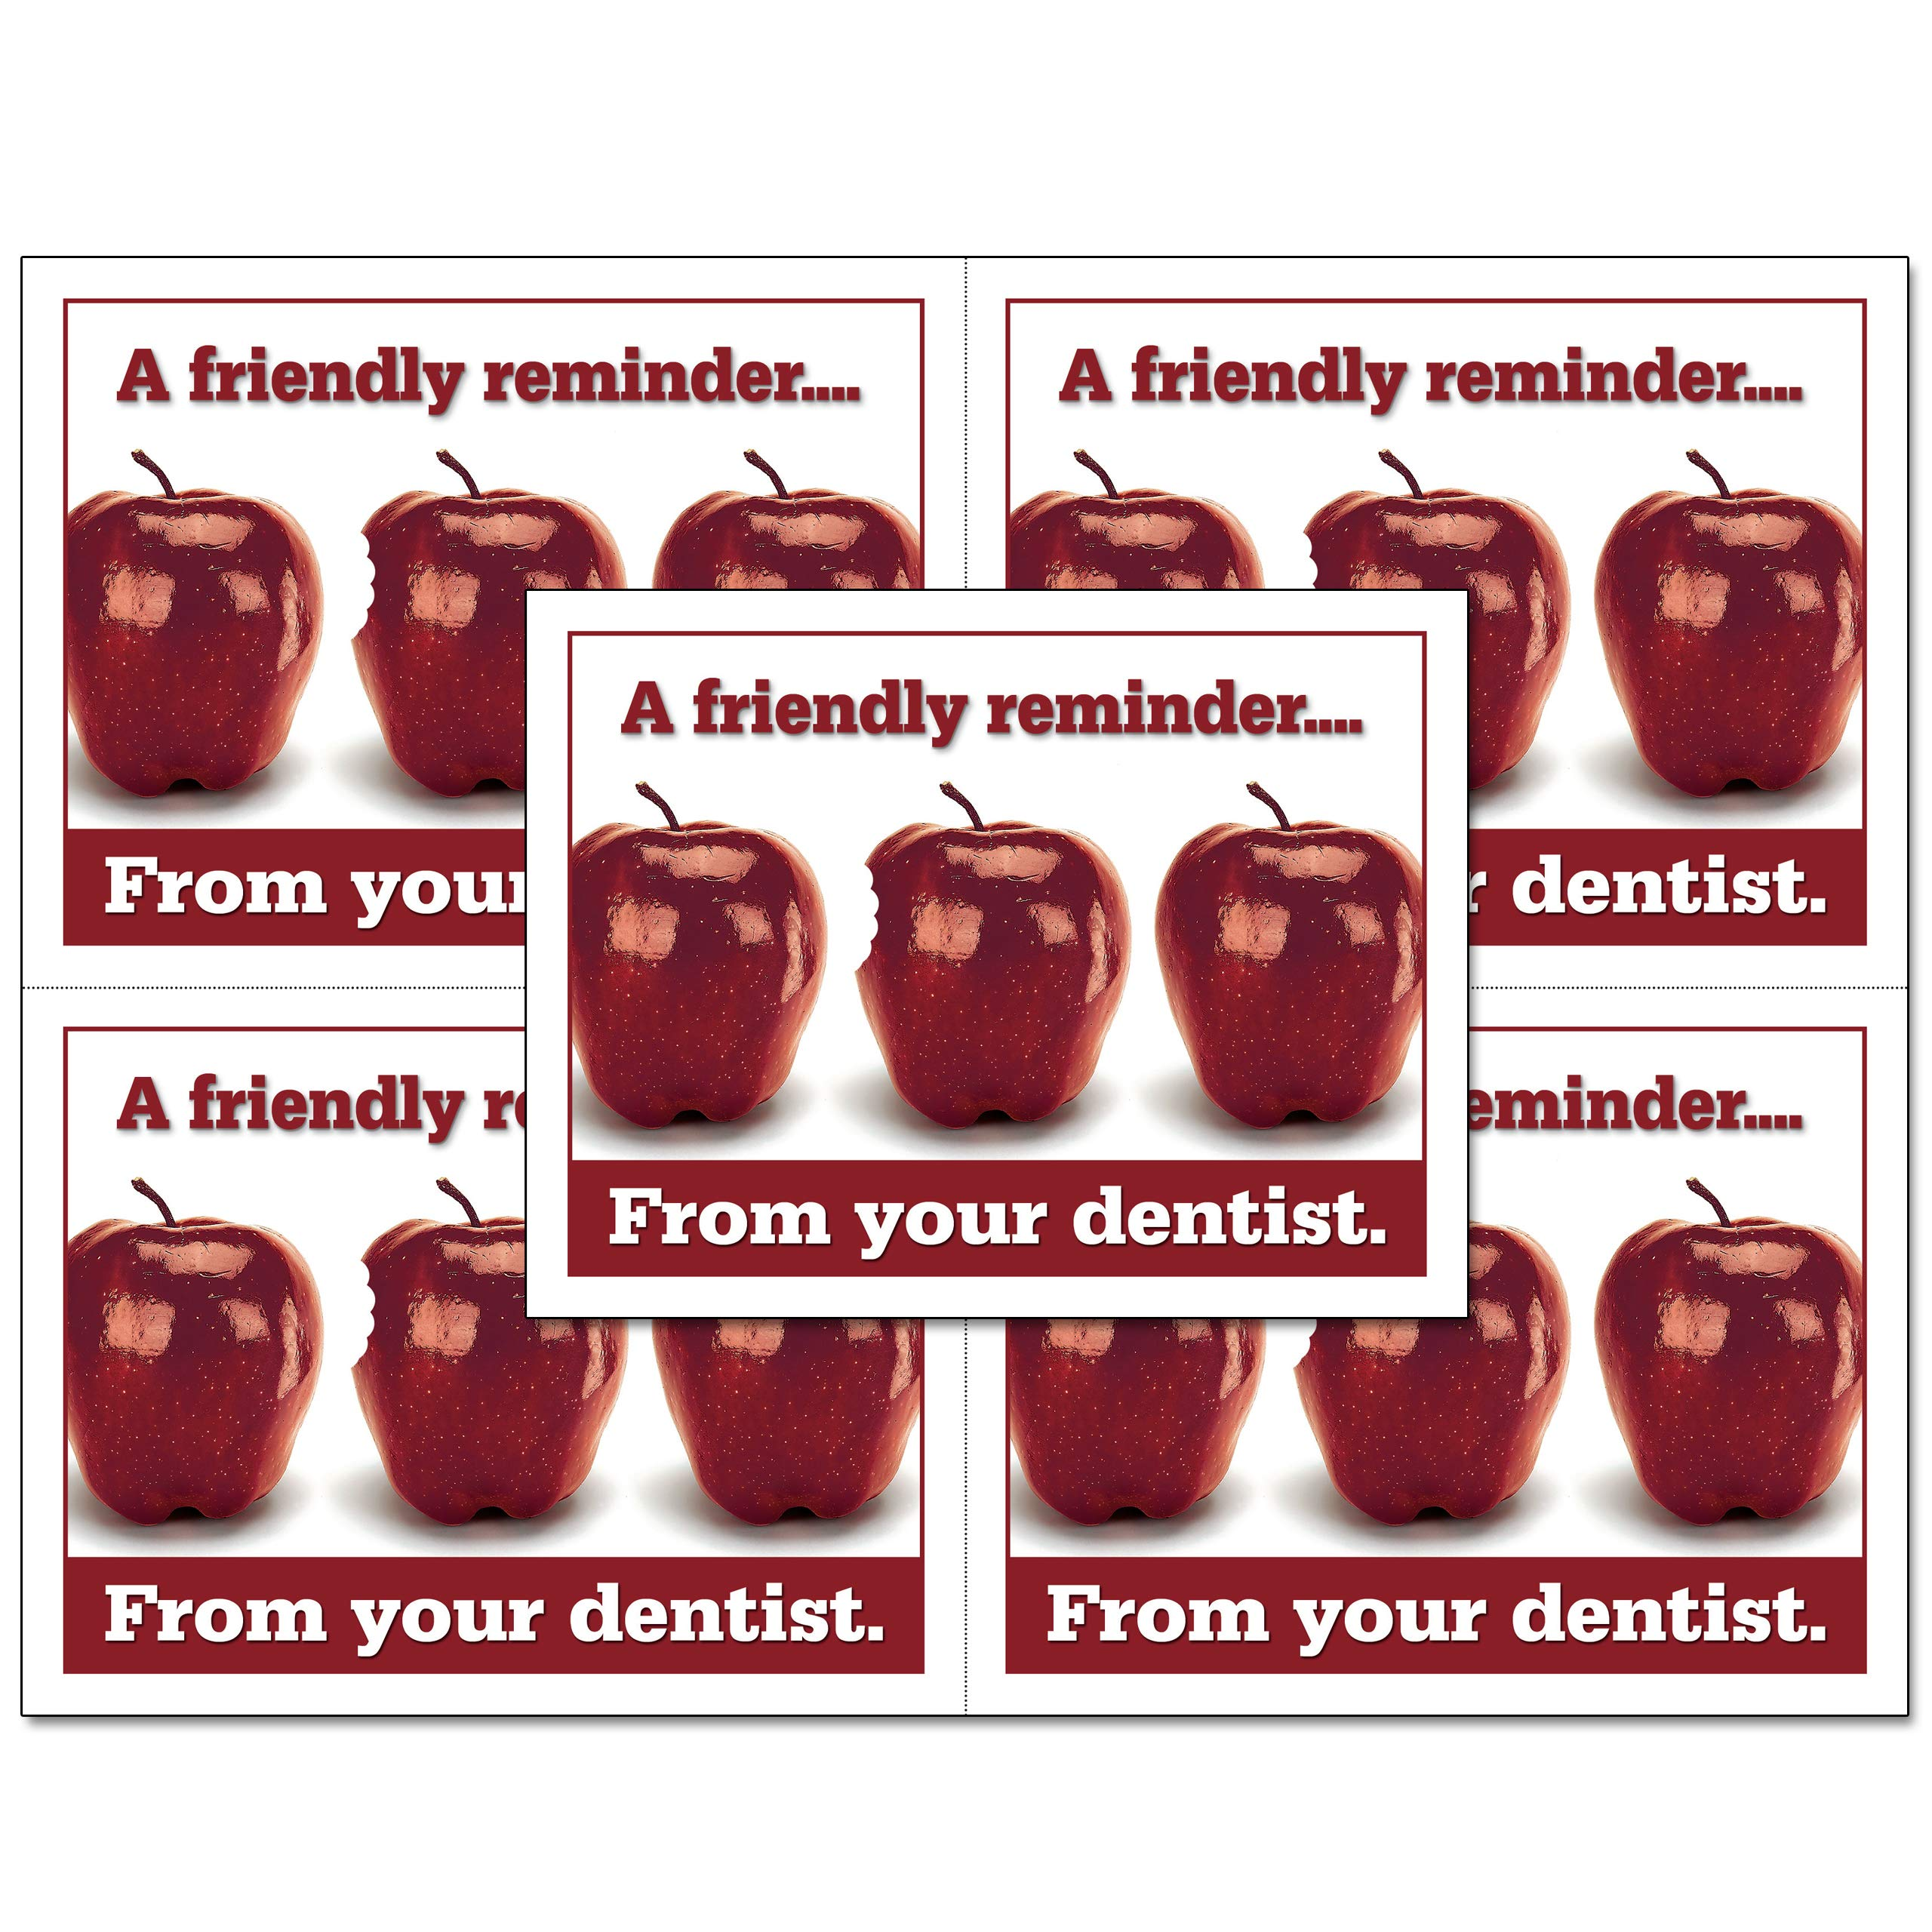 Laser Reminder Postcards, Dental Appointment Reminder Postcards. 4 Cards Perforated for Tear-Off at 4.25'' x 5.5'' on an 8.5'' x 11'' Sheet of 8 Pt Card Stock. DEN106-LZS (5000) by Custom Recall (Image #1)